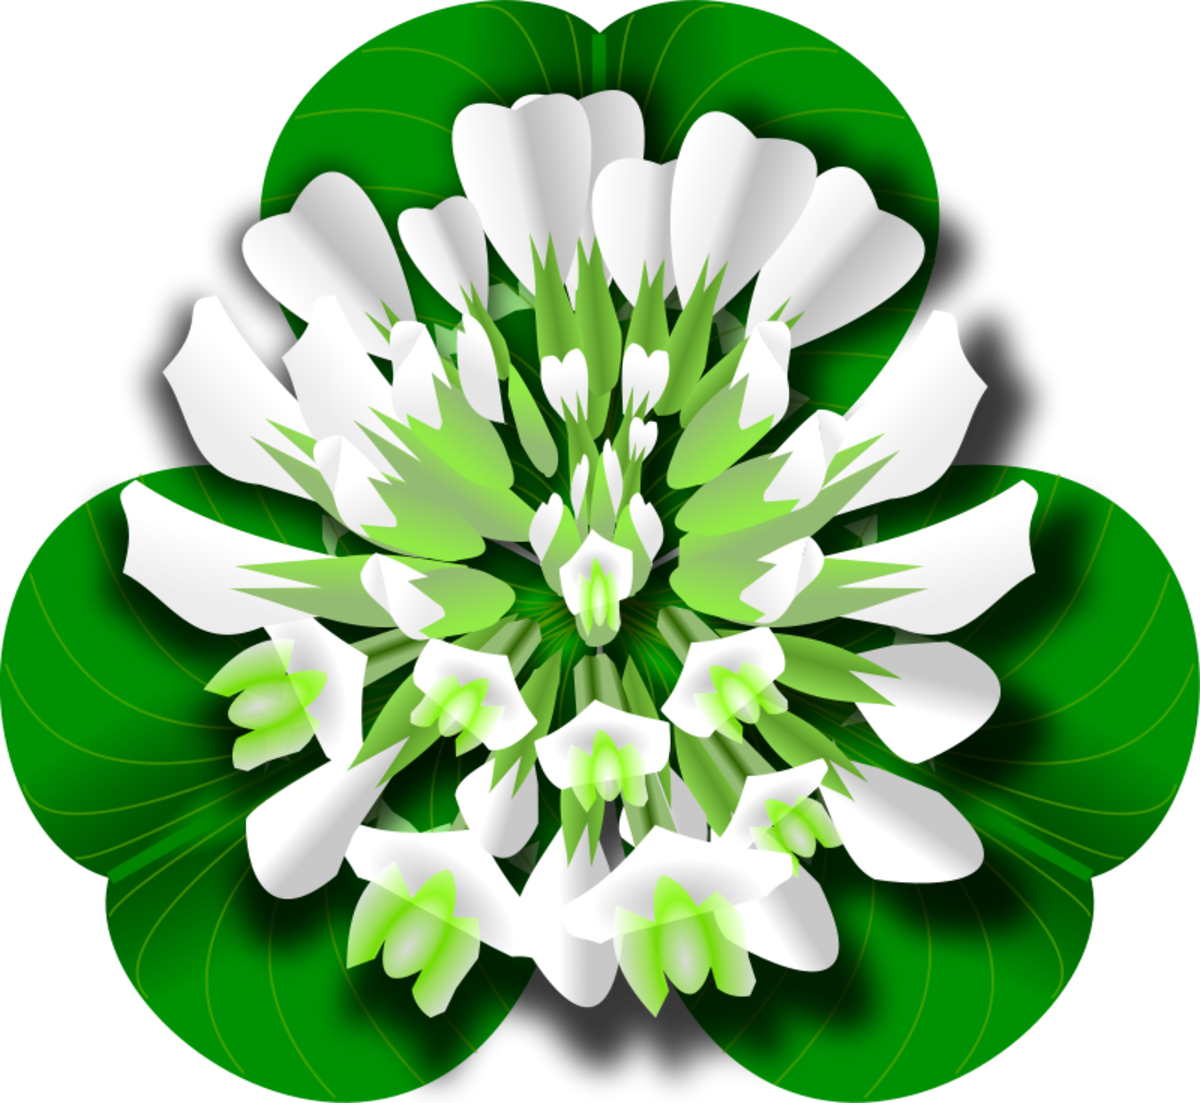 Shamrock with White Blossom